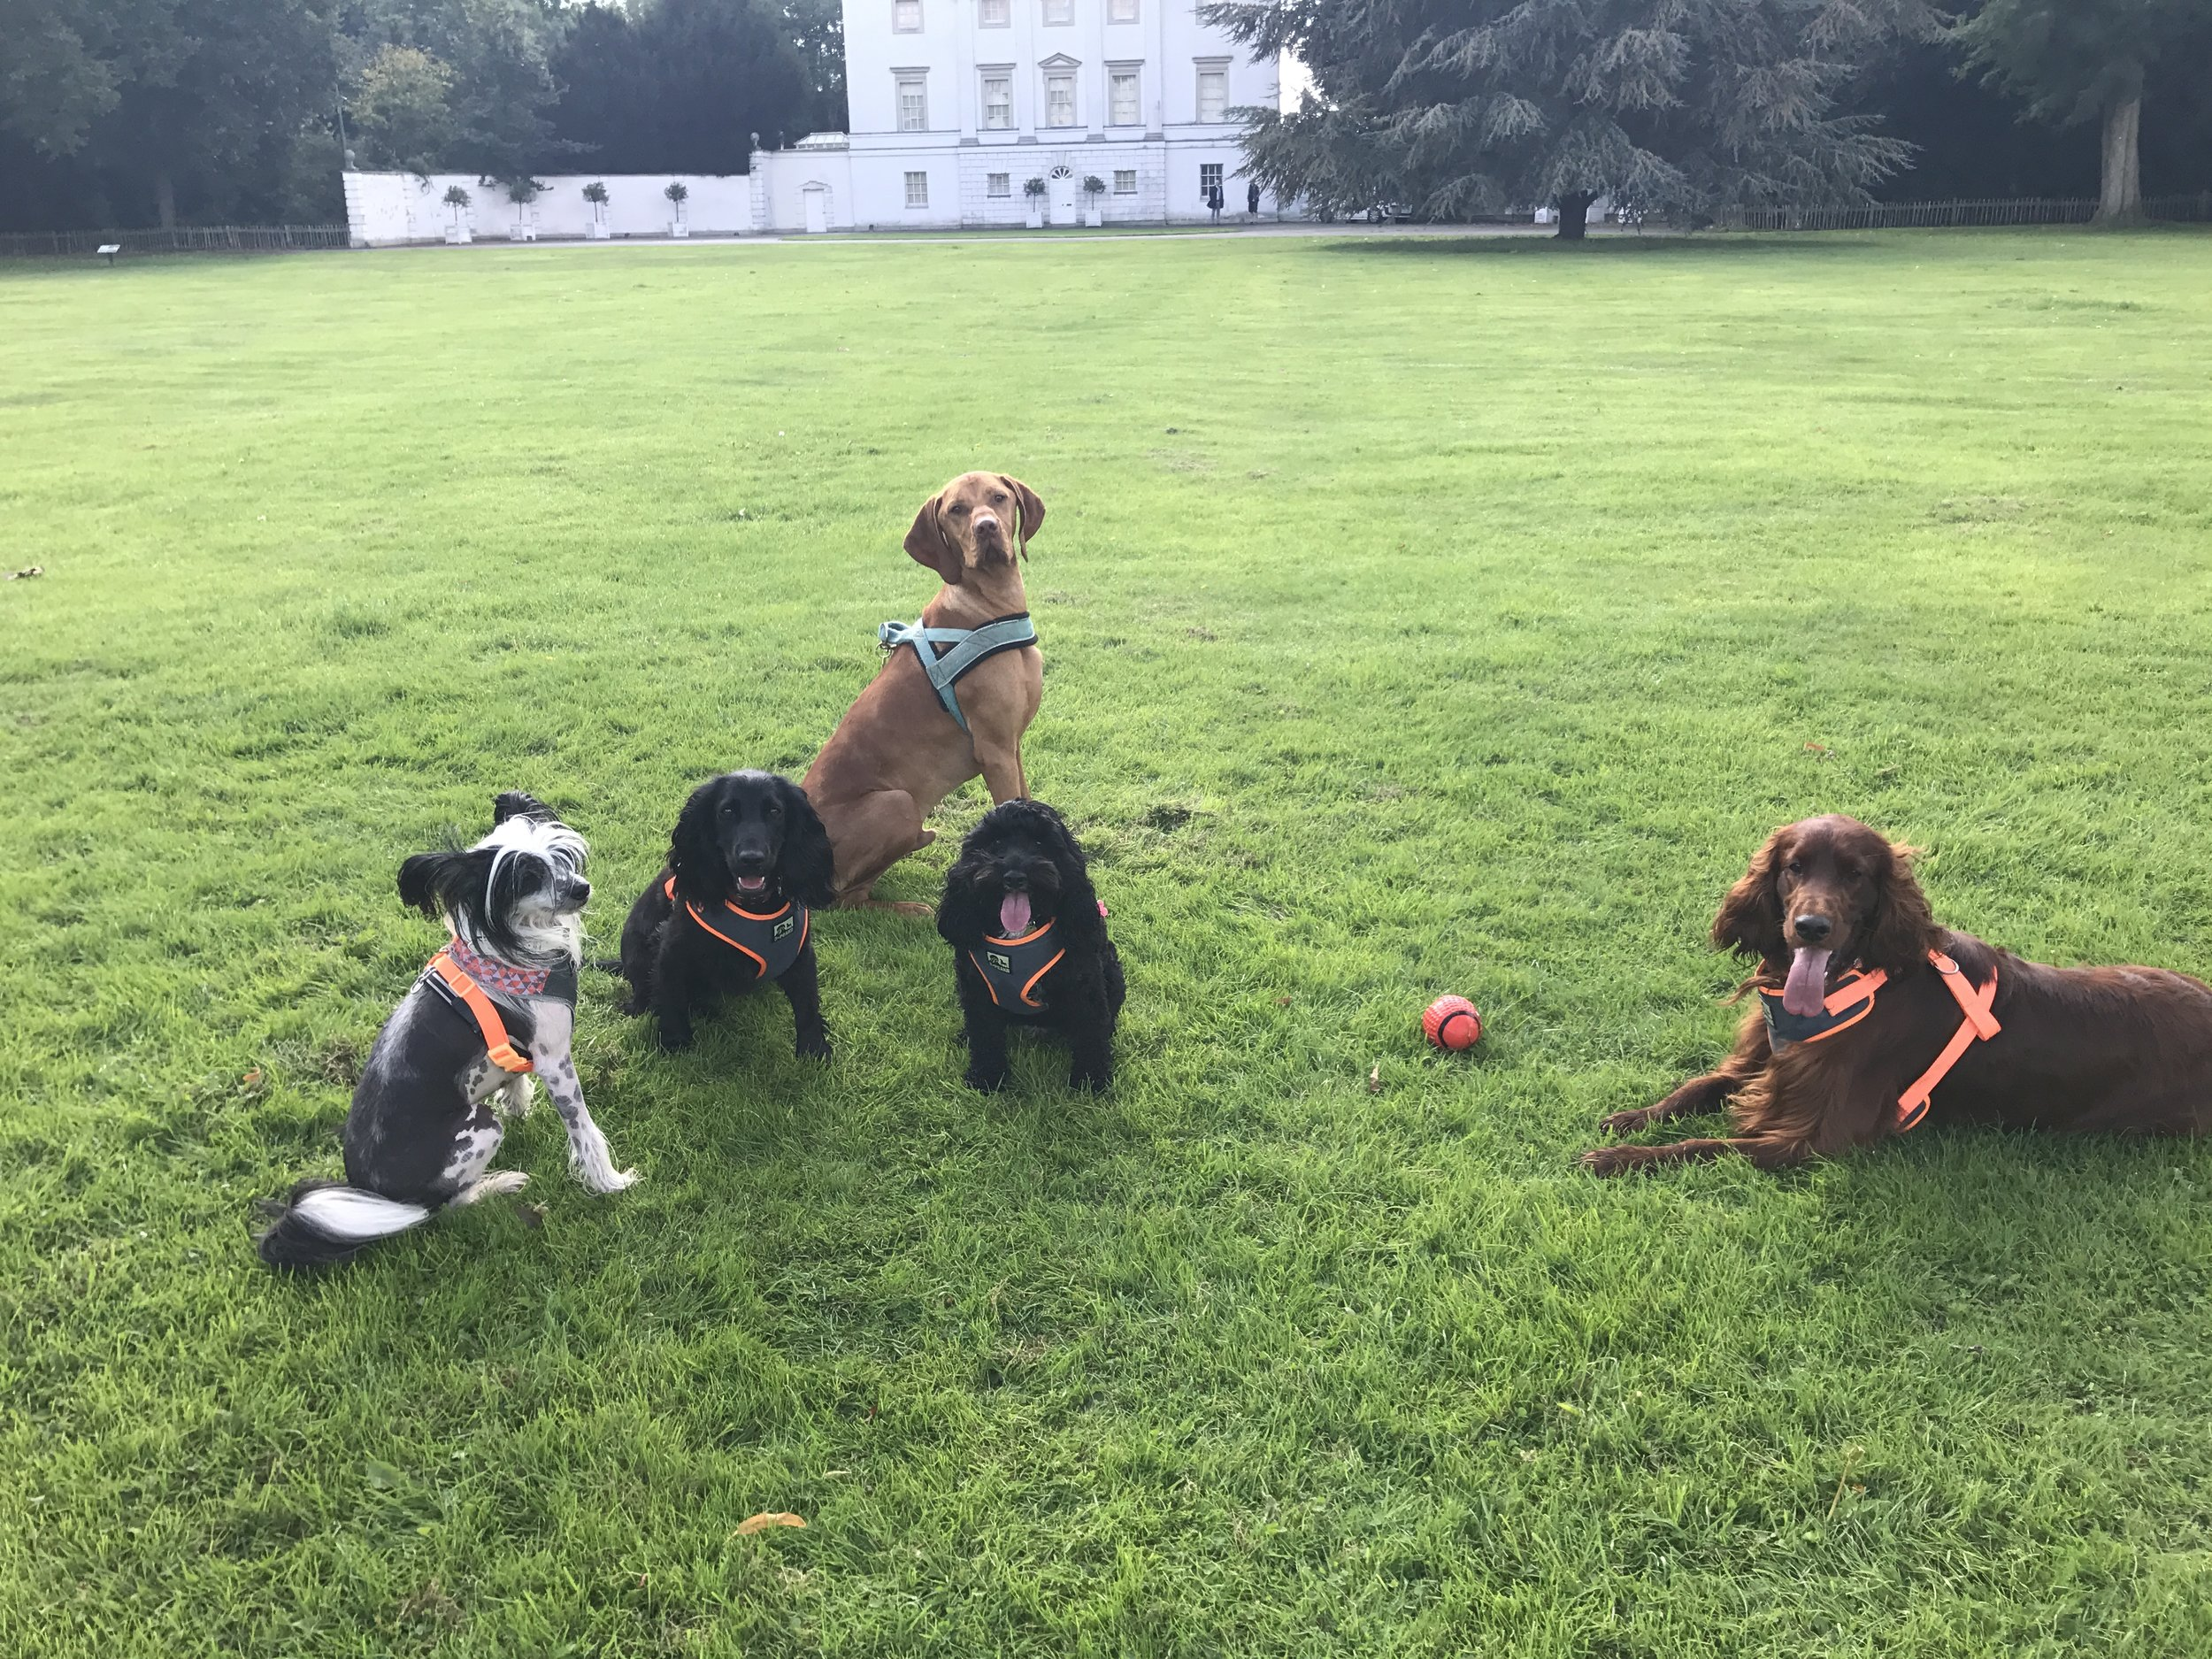 Having a breather in Marble Hill Park October 2017